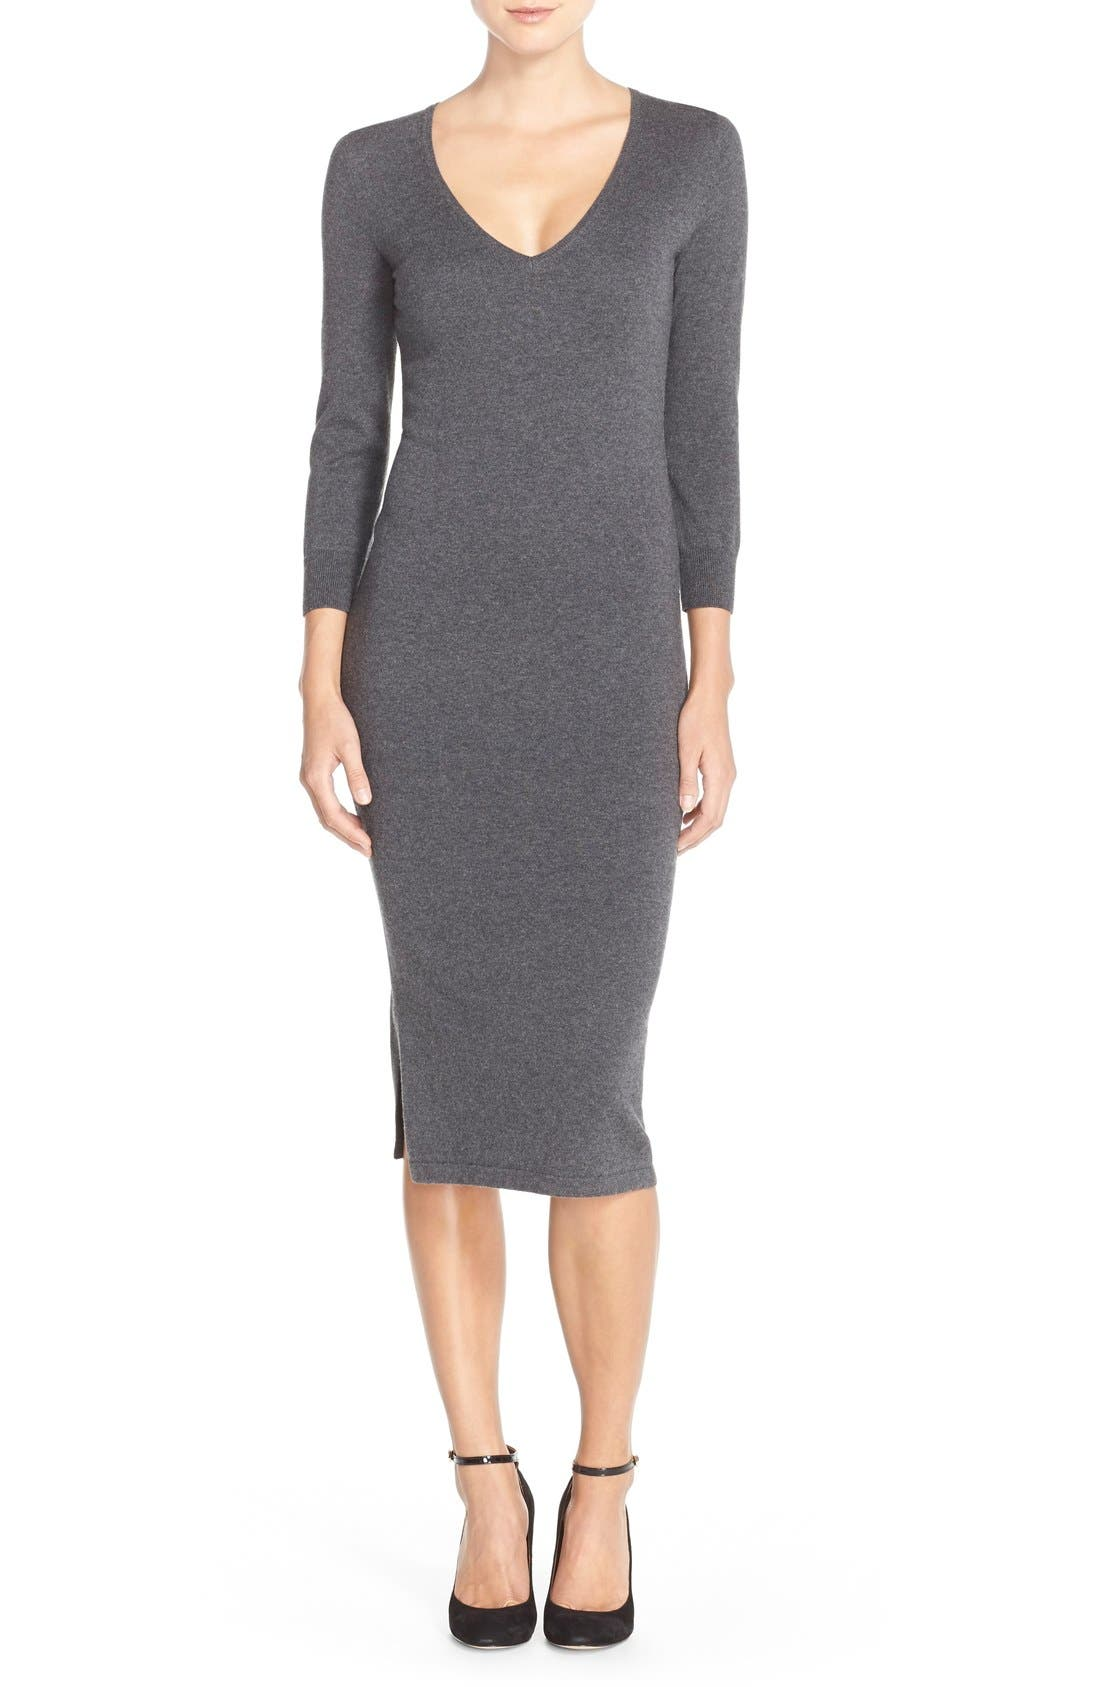 'Bambino' Knit Sweater Dress,                         Main,                         color, 023